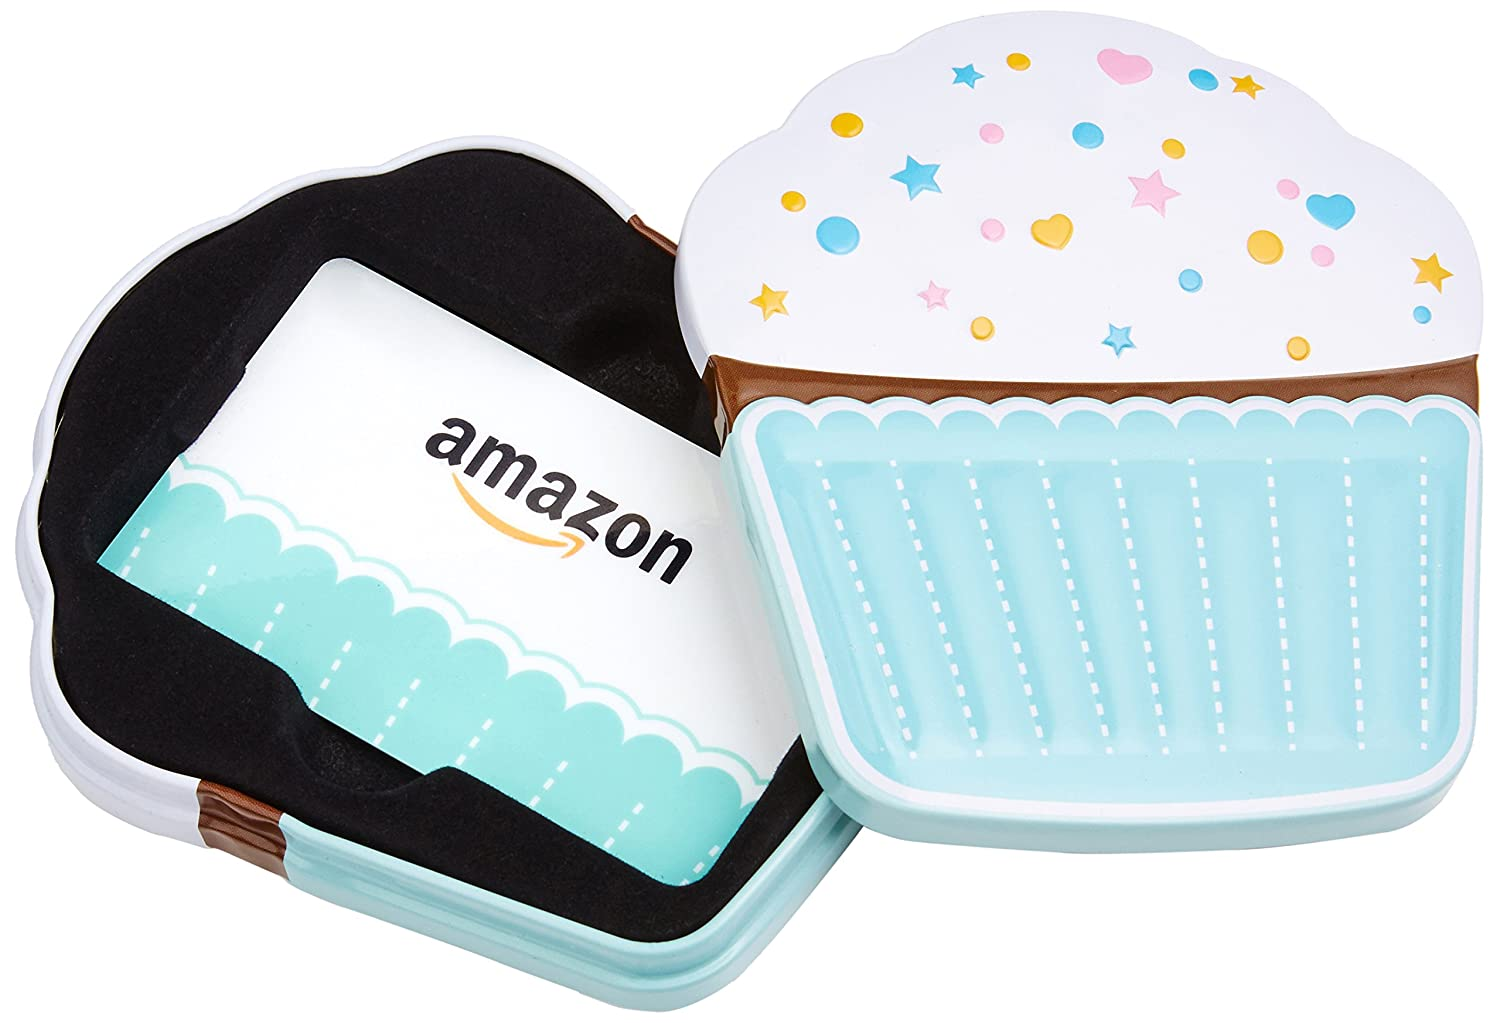 Amazon.ca Gift Card for Any Amount in a Birthday Cupcake Tin (Incorrect Setup) VariableDenomination